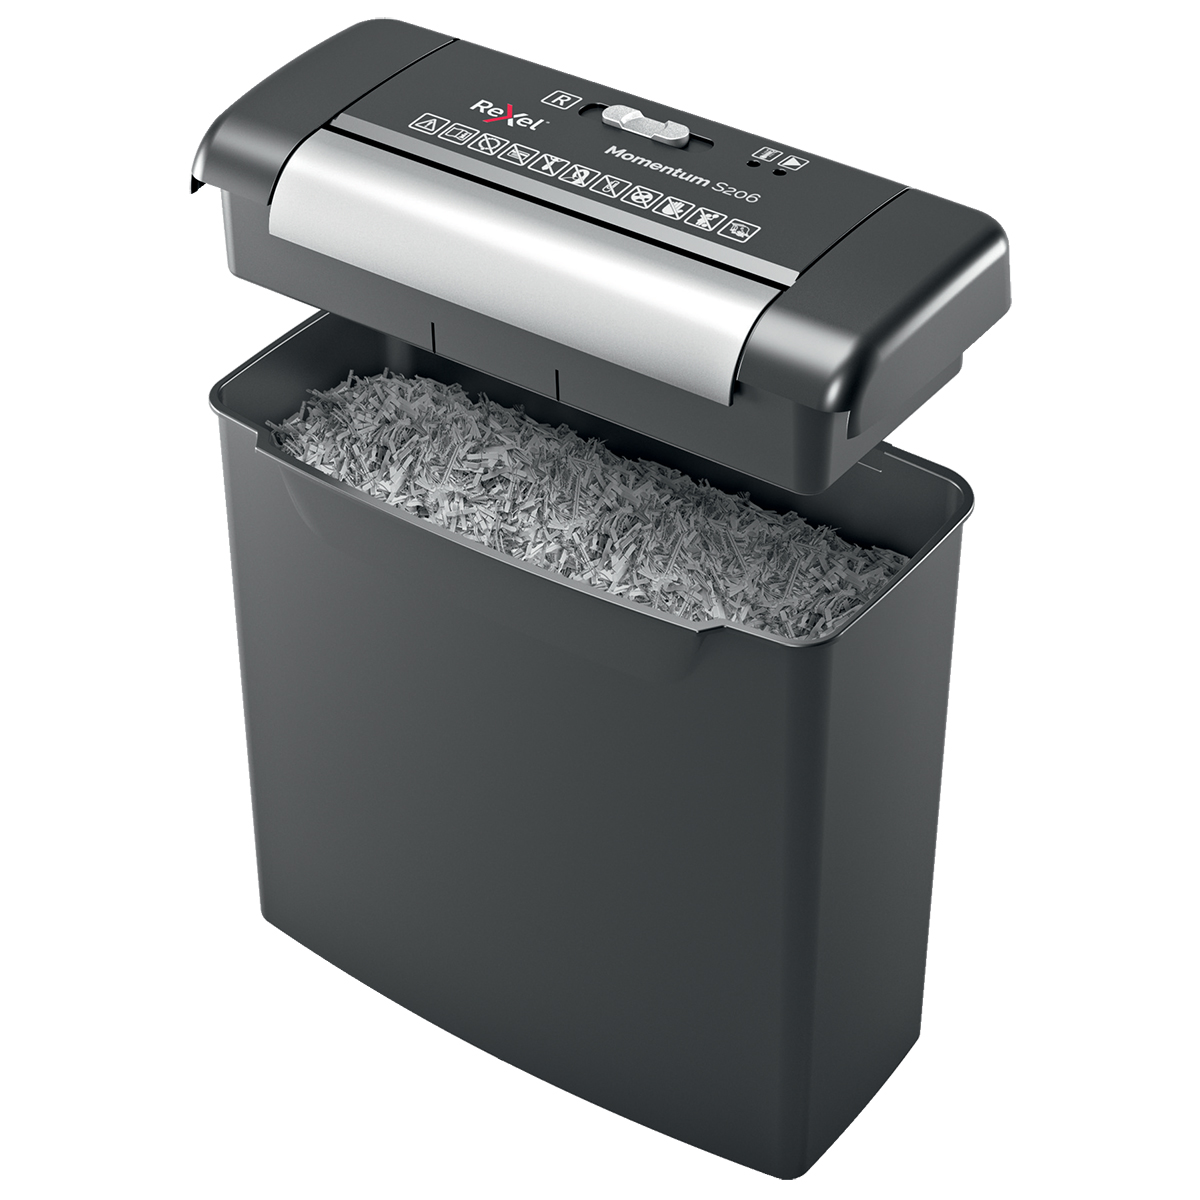 Rexel Momentum S206 Strip Cut Shredder